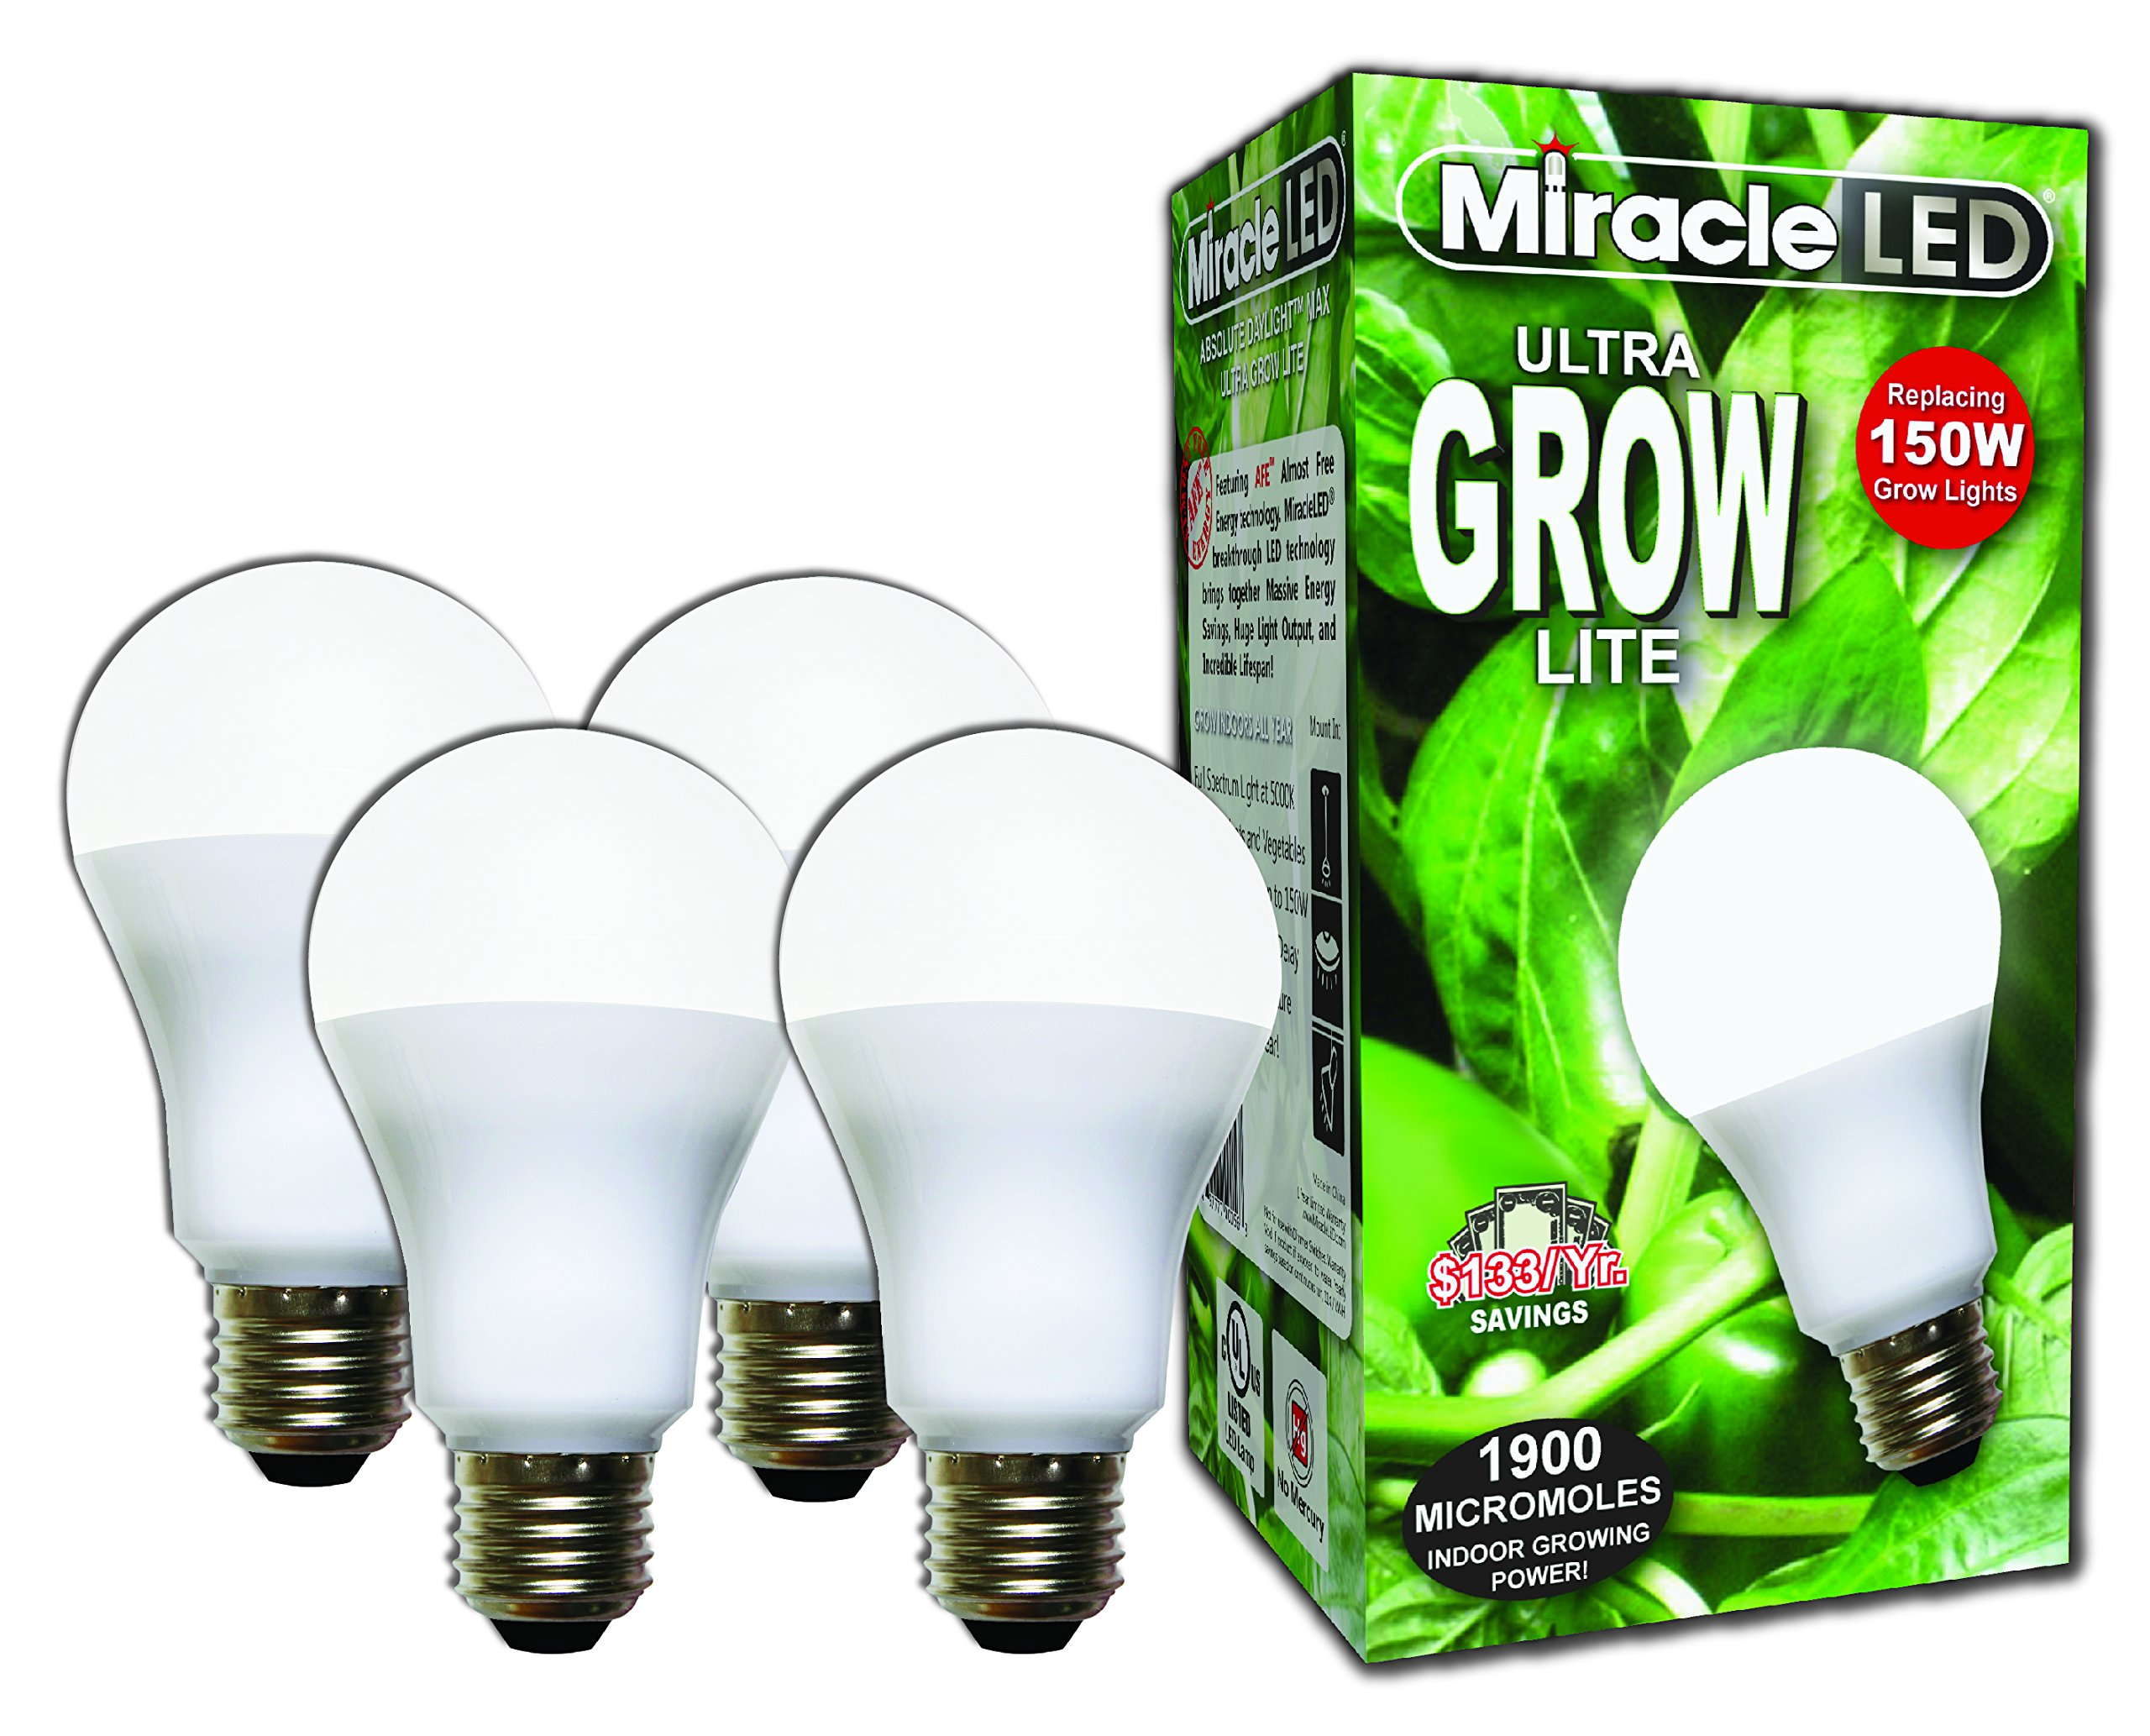 Miracle LED Commercial Hydroponic Ultra Grow Lite - Replaces up to 150W - Daylight White Full Spectrum LED Indoor Plant Growing Light Bulb For DIY Horticulture & Indoor Gardening (604281) 4 Pack by MiracleLED (Image #1)